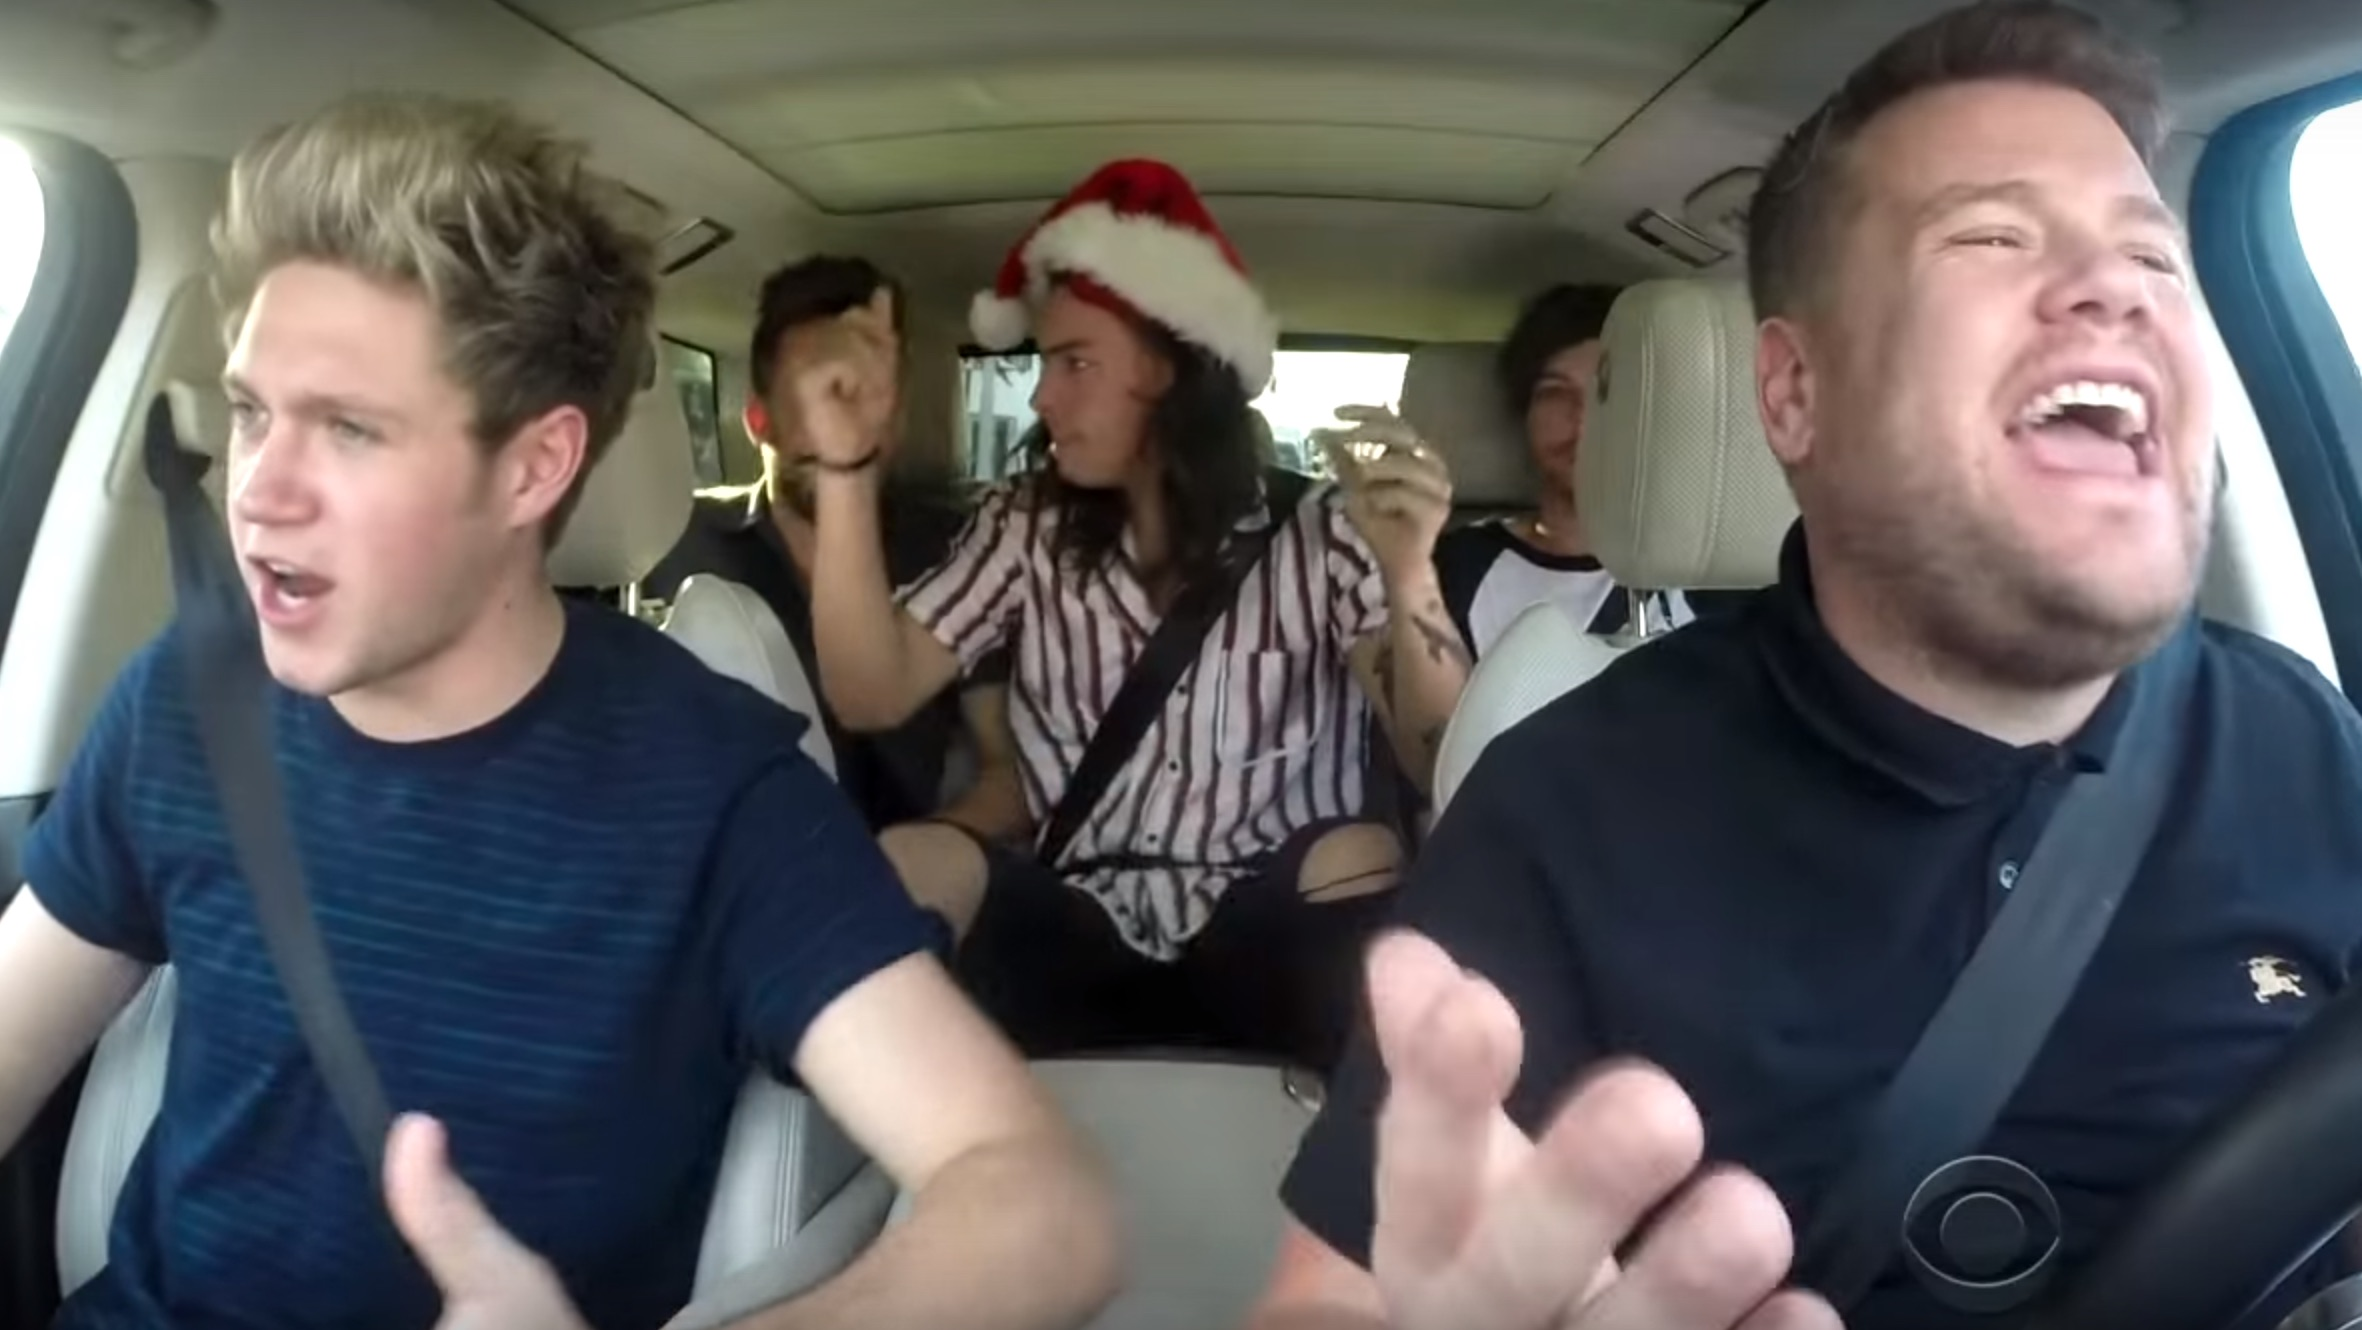 James Corden had all of his guests help with this amazing Christmas Carpool Karaoke